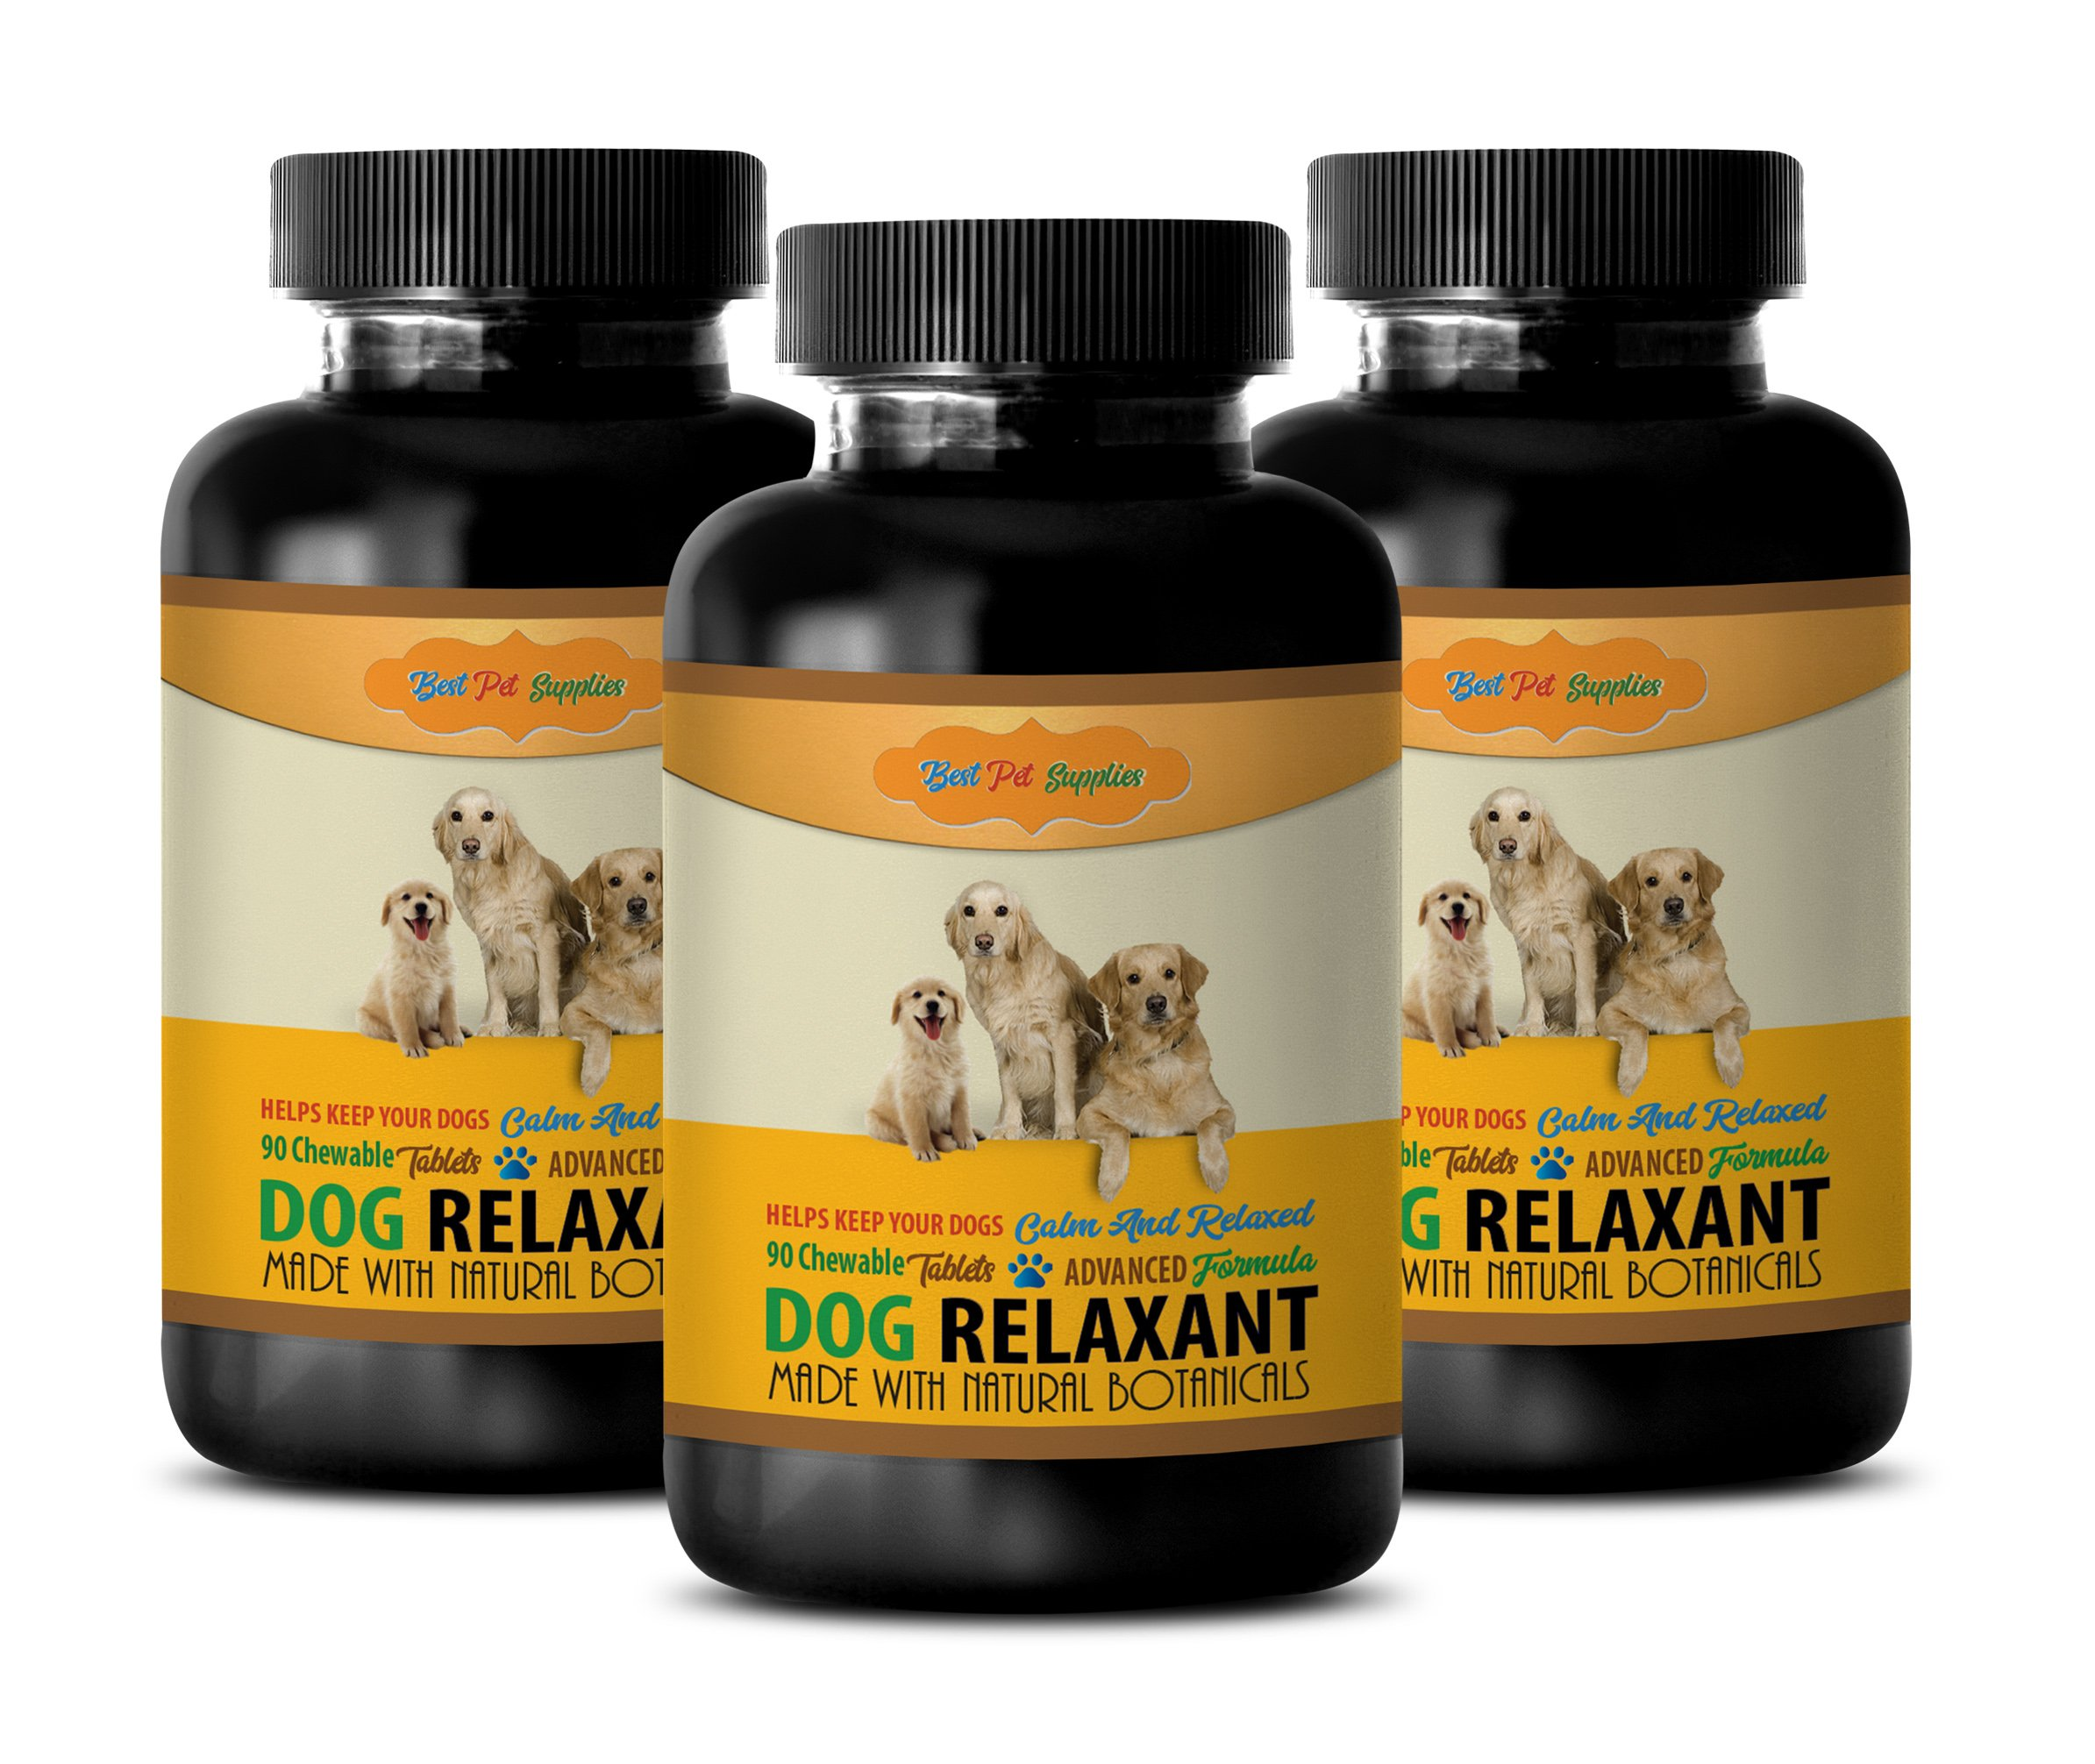 BEST PET SUPPLIES LLC puppy relaxation - DOG RELAXANT - CALM AND RELAXED FOR DOGS - NATURAL BOTANICALS - CHEWABLE - dog calming pills - 270 Chews (3 Bottle)